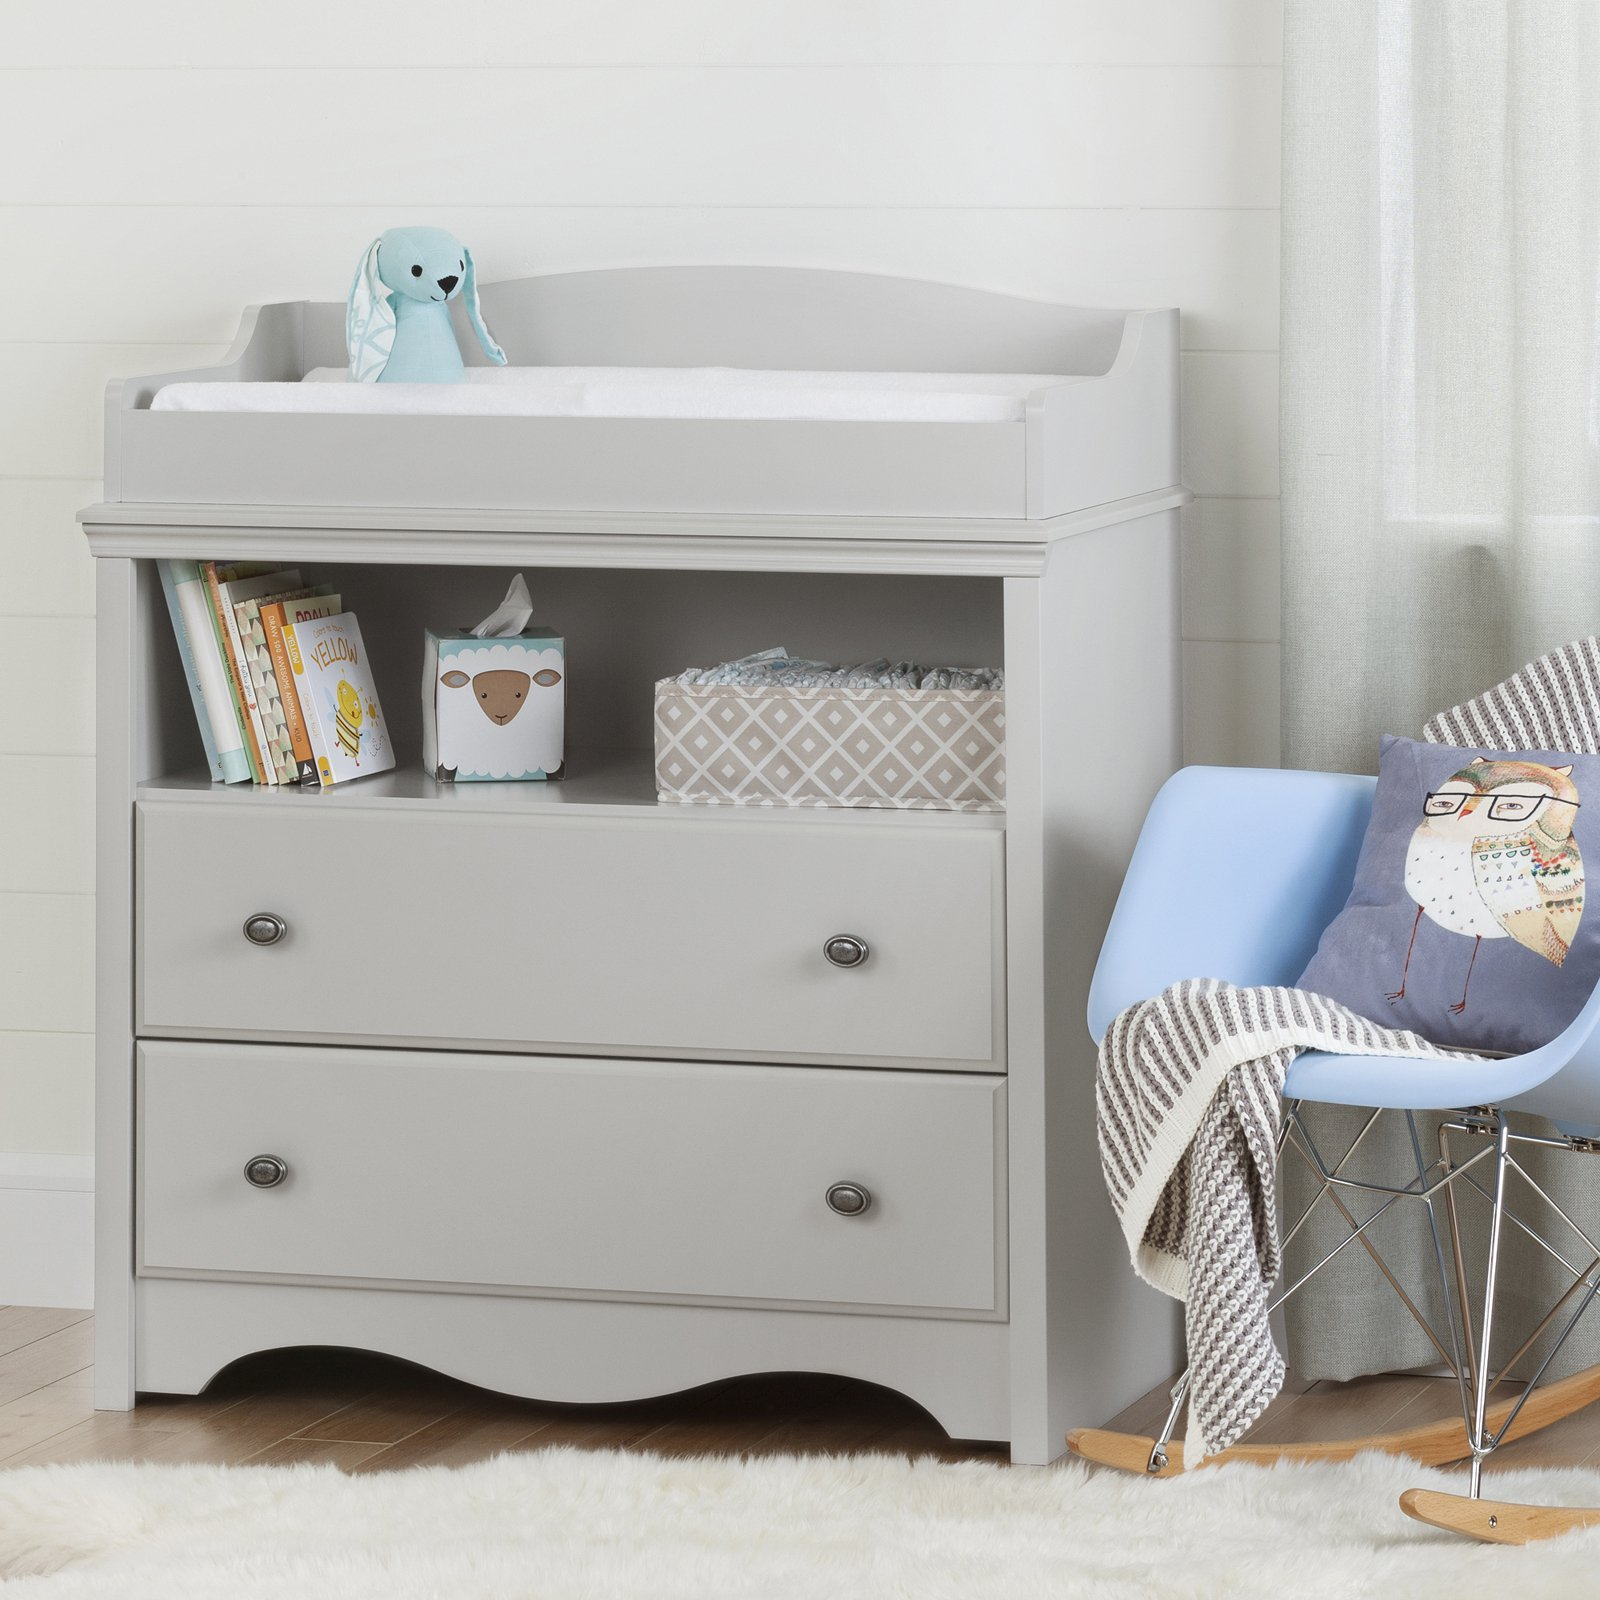 Changing Table Chest Of Drawers South Shore Angel Changing Table With Drawers Multiple Finishes